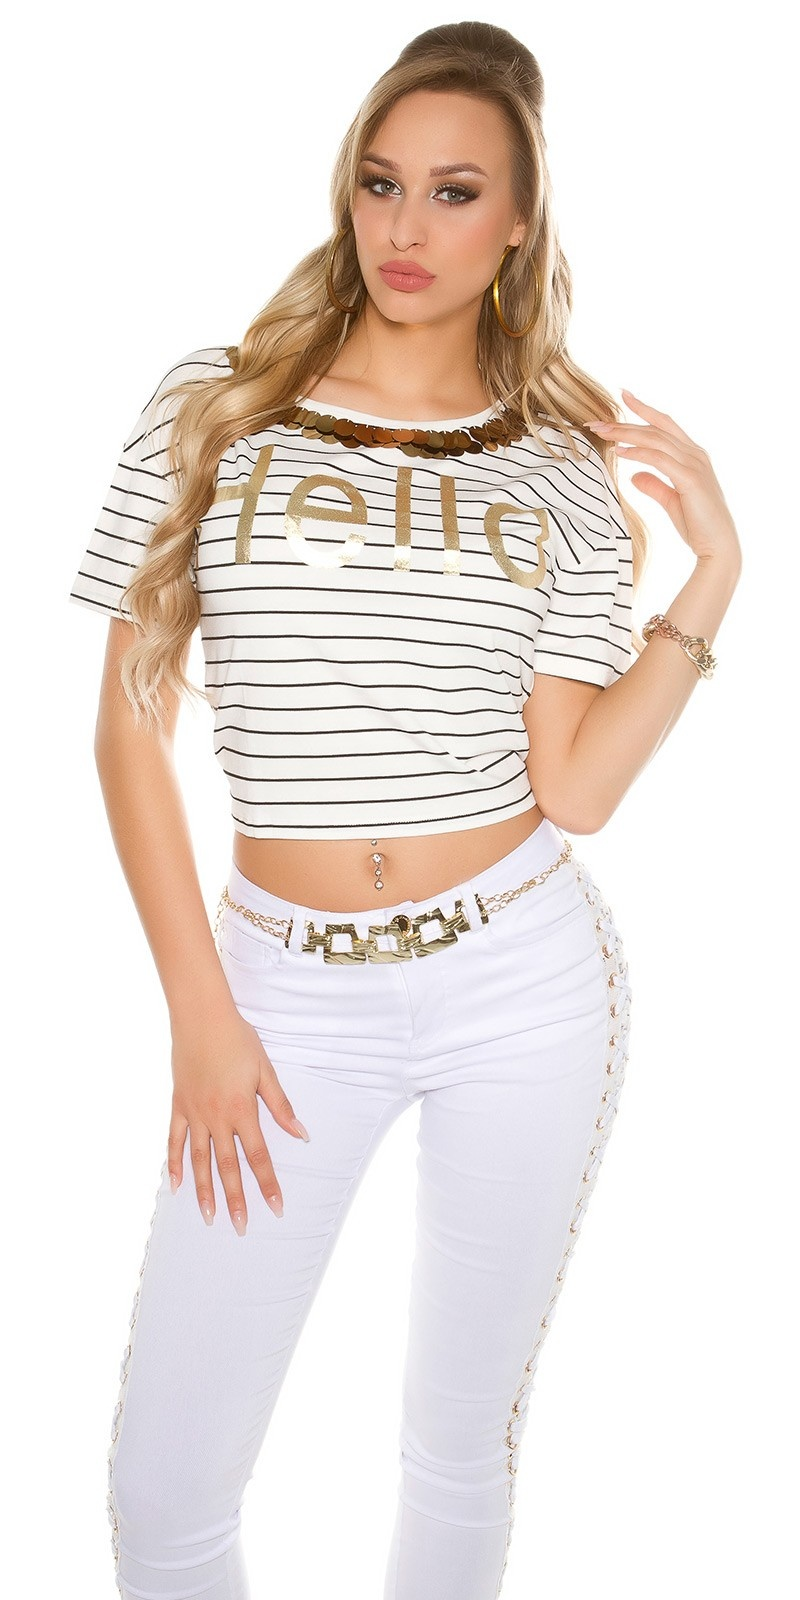 Trendy T-Shirt striped HELLO with sequins White